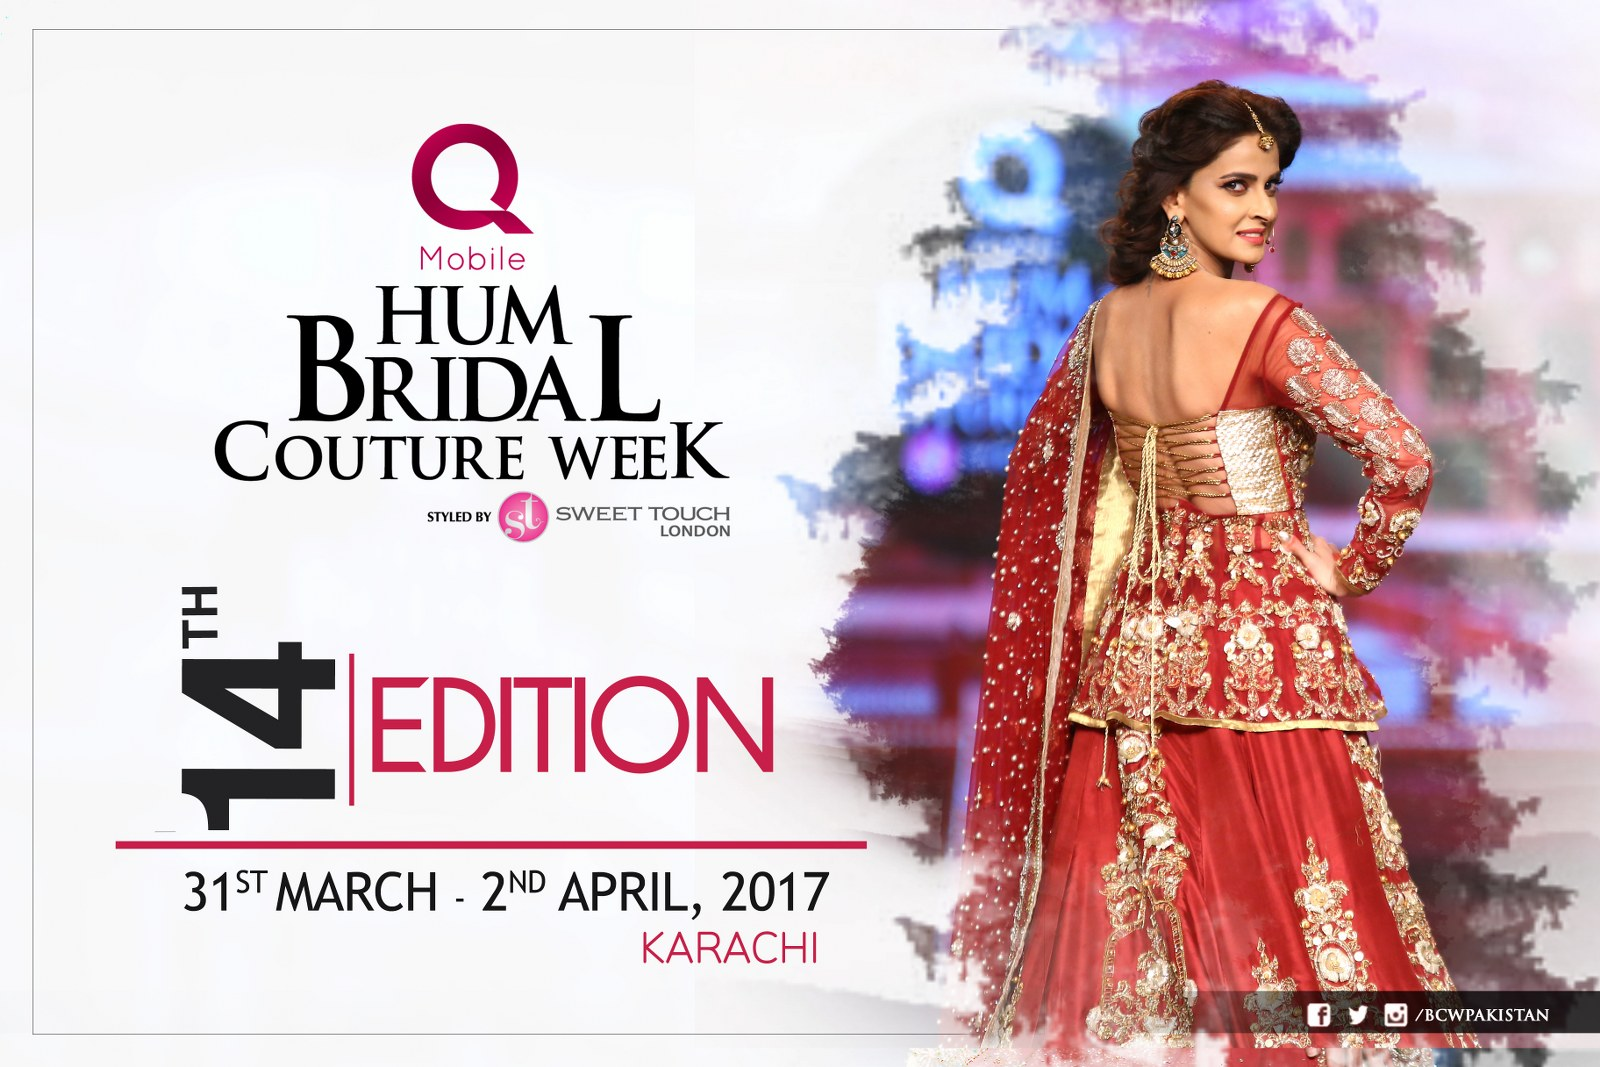 Hum Network announced the dates for 14th Bridal Couture Week 2017